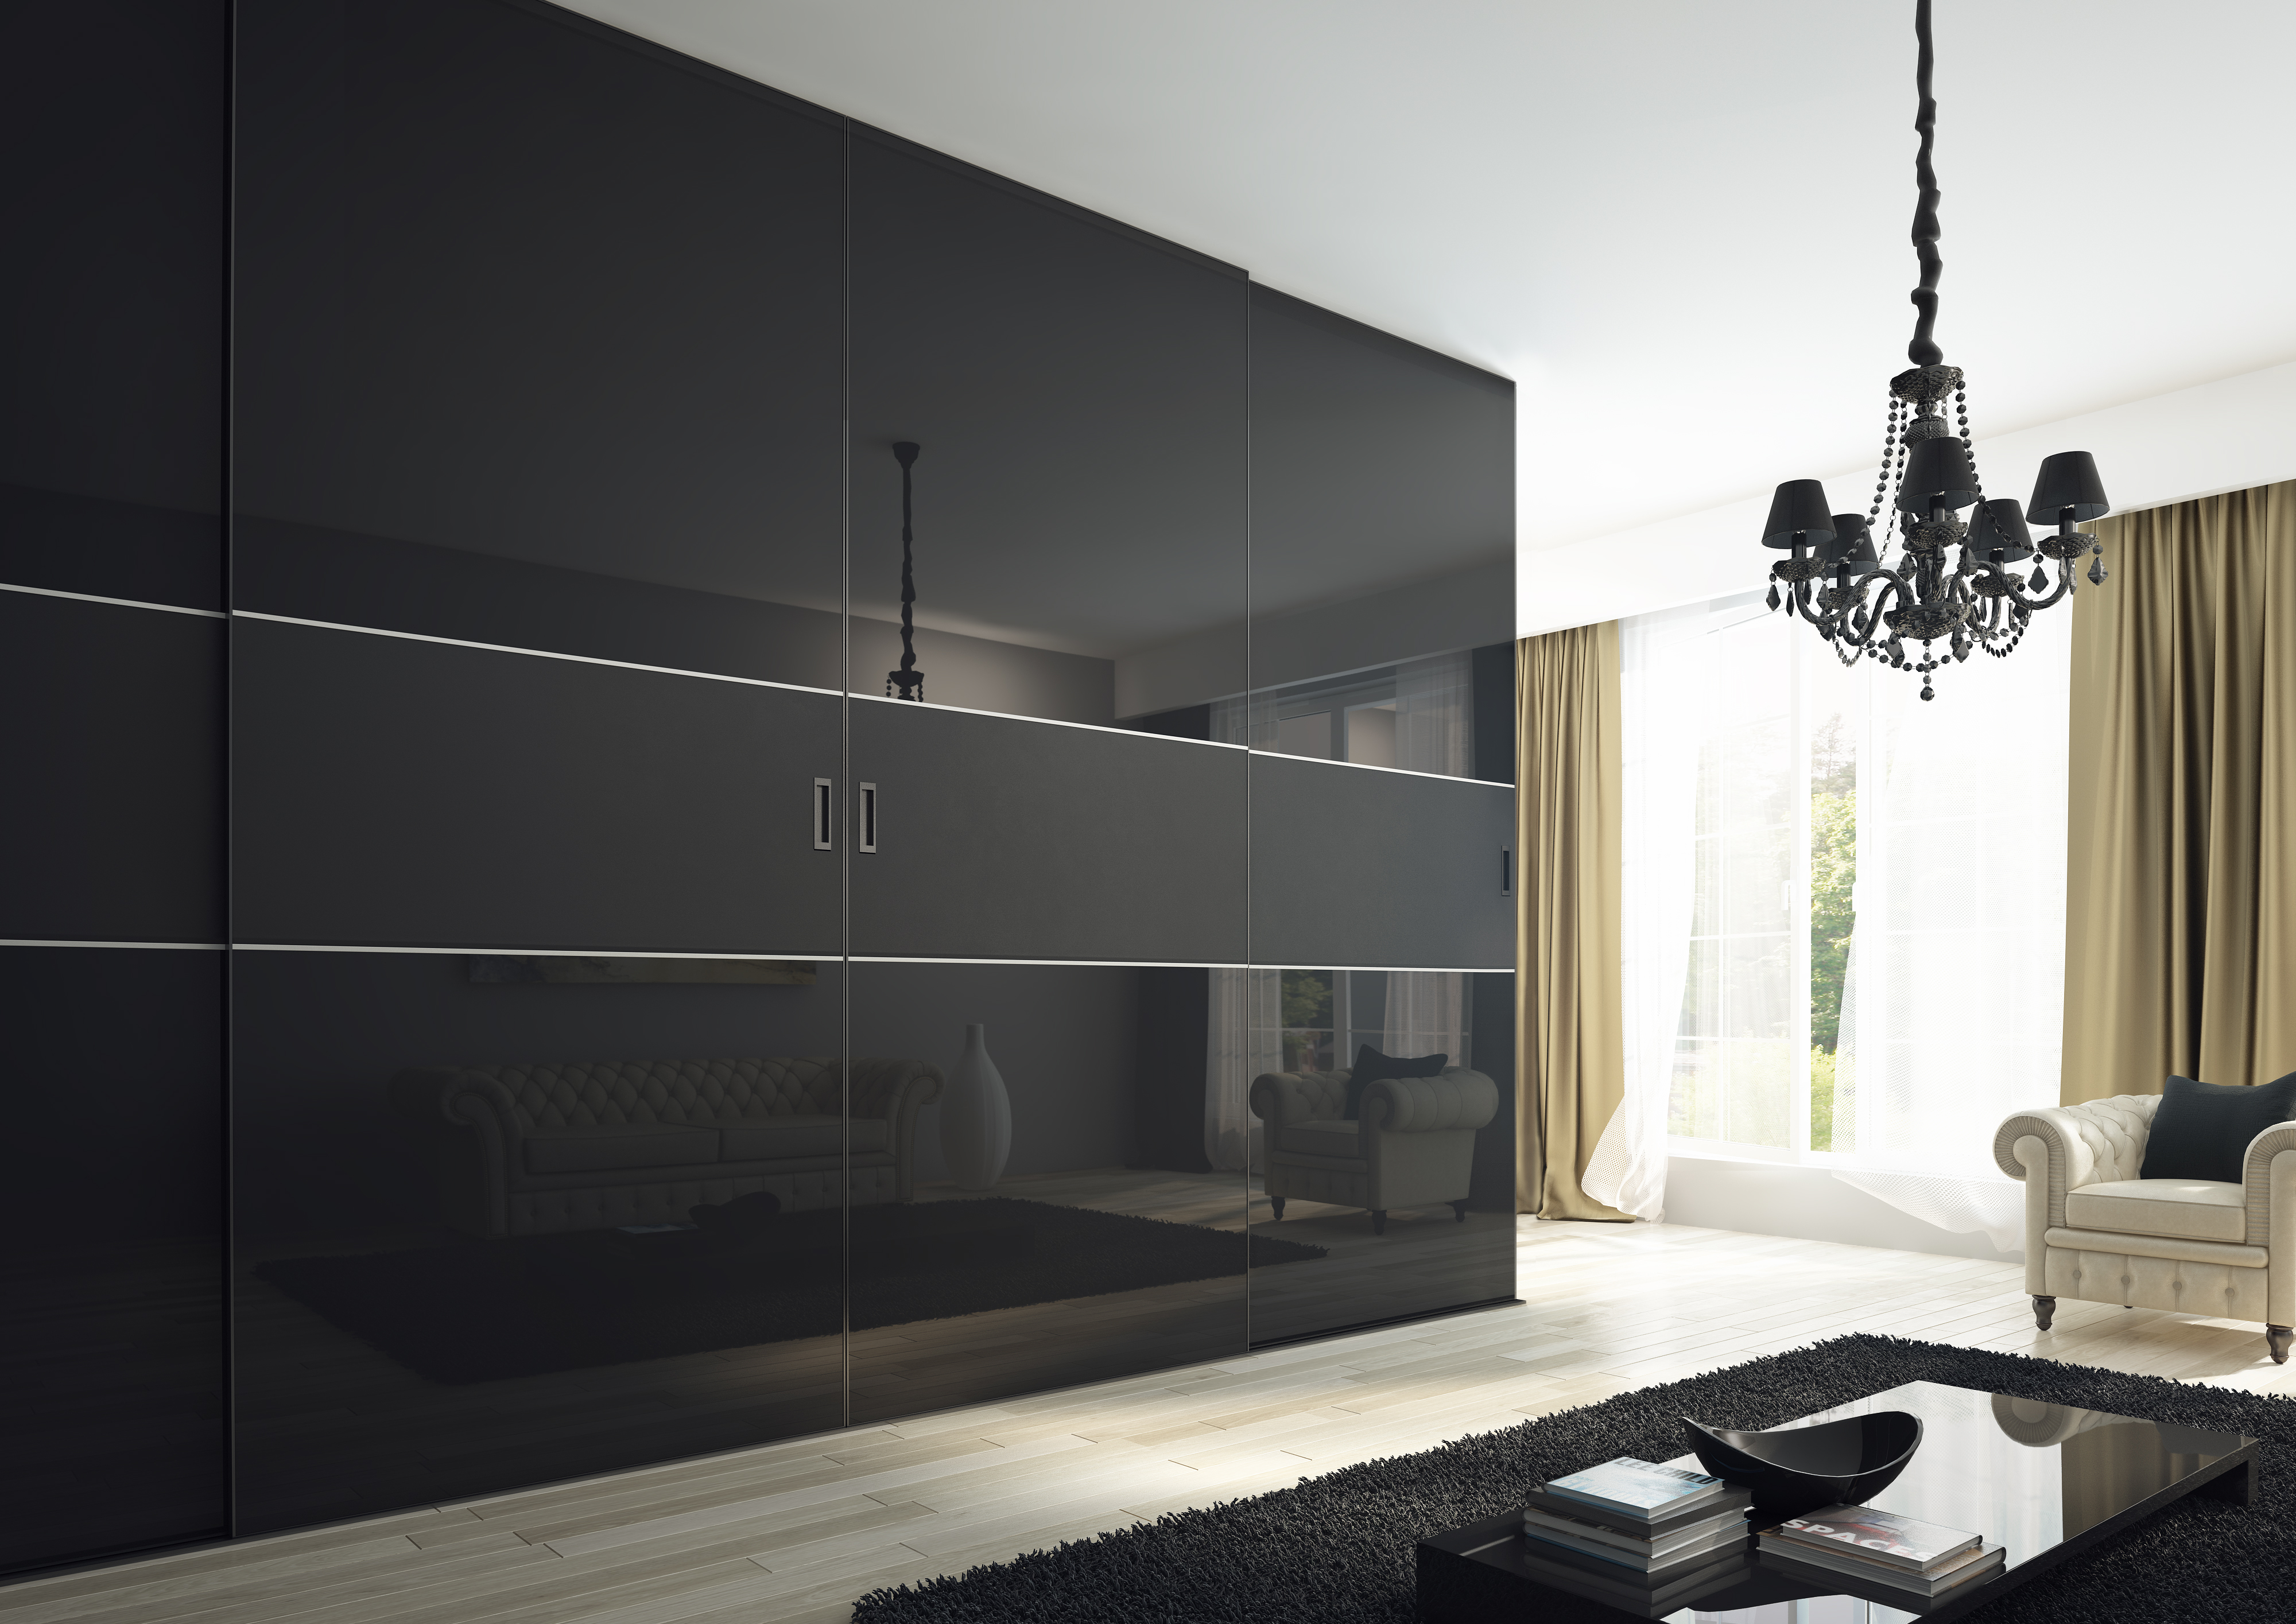 Made to measure sliding wardrobes glass sliding doors mirror -  Made To Measure Sliding Doors Mirror Sliding Doors Budget Sliding Doors London Bi Fold